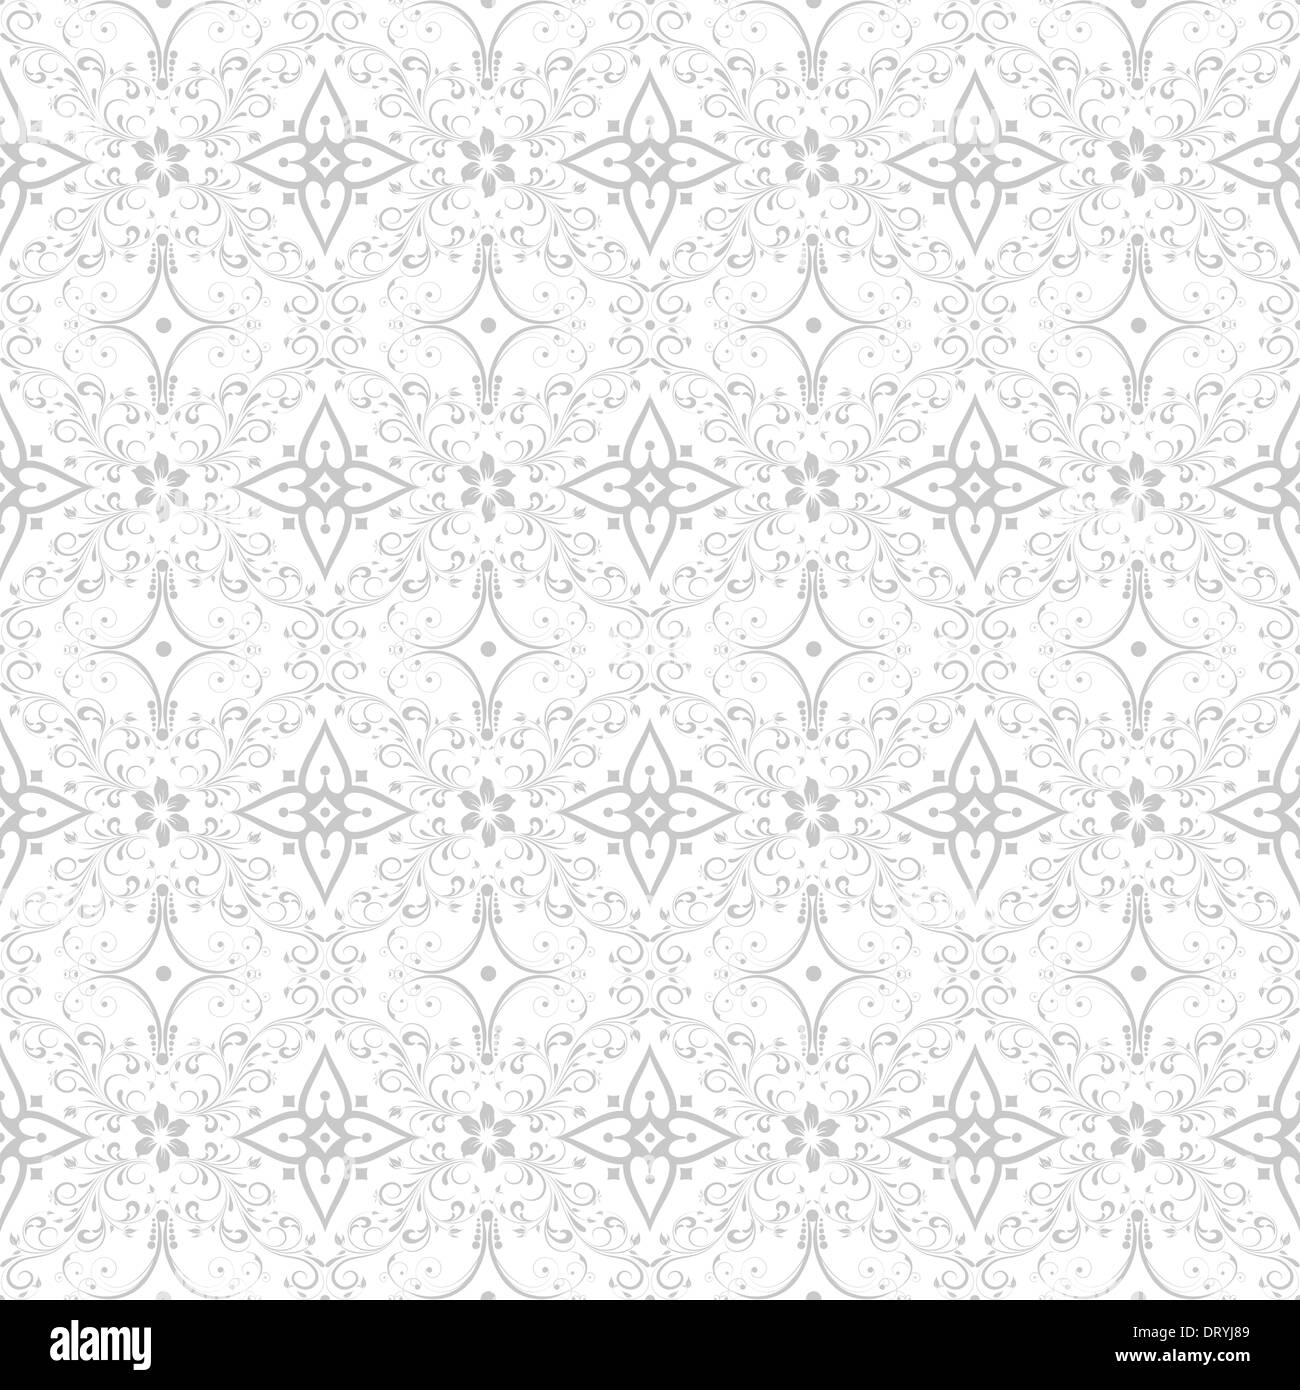 Seamless Floral Pattern - Stock Image